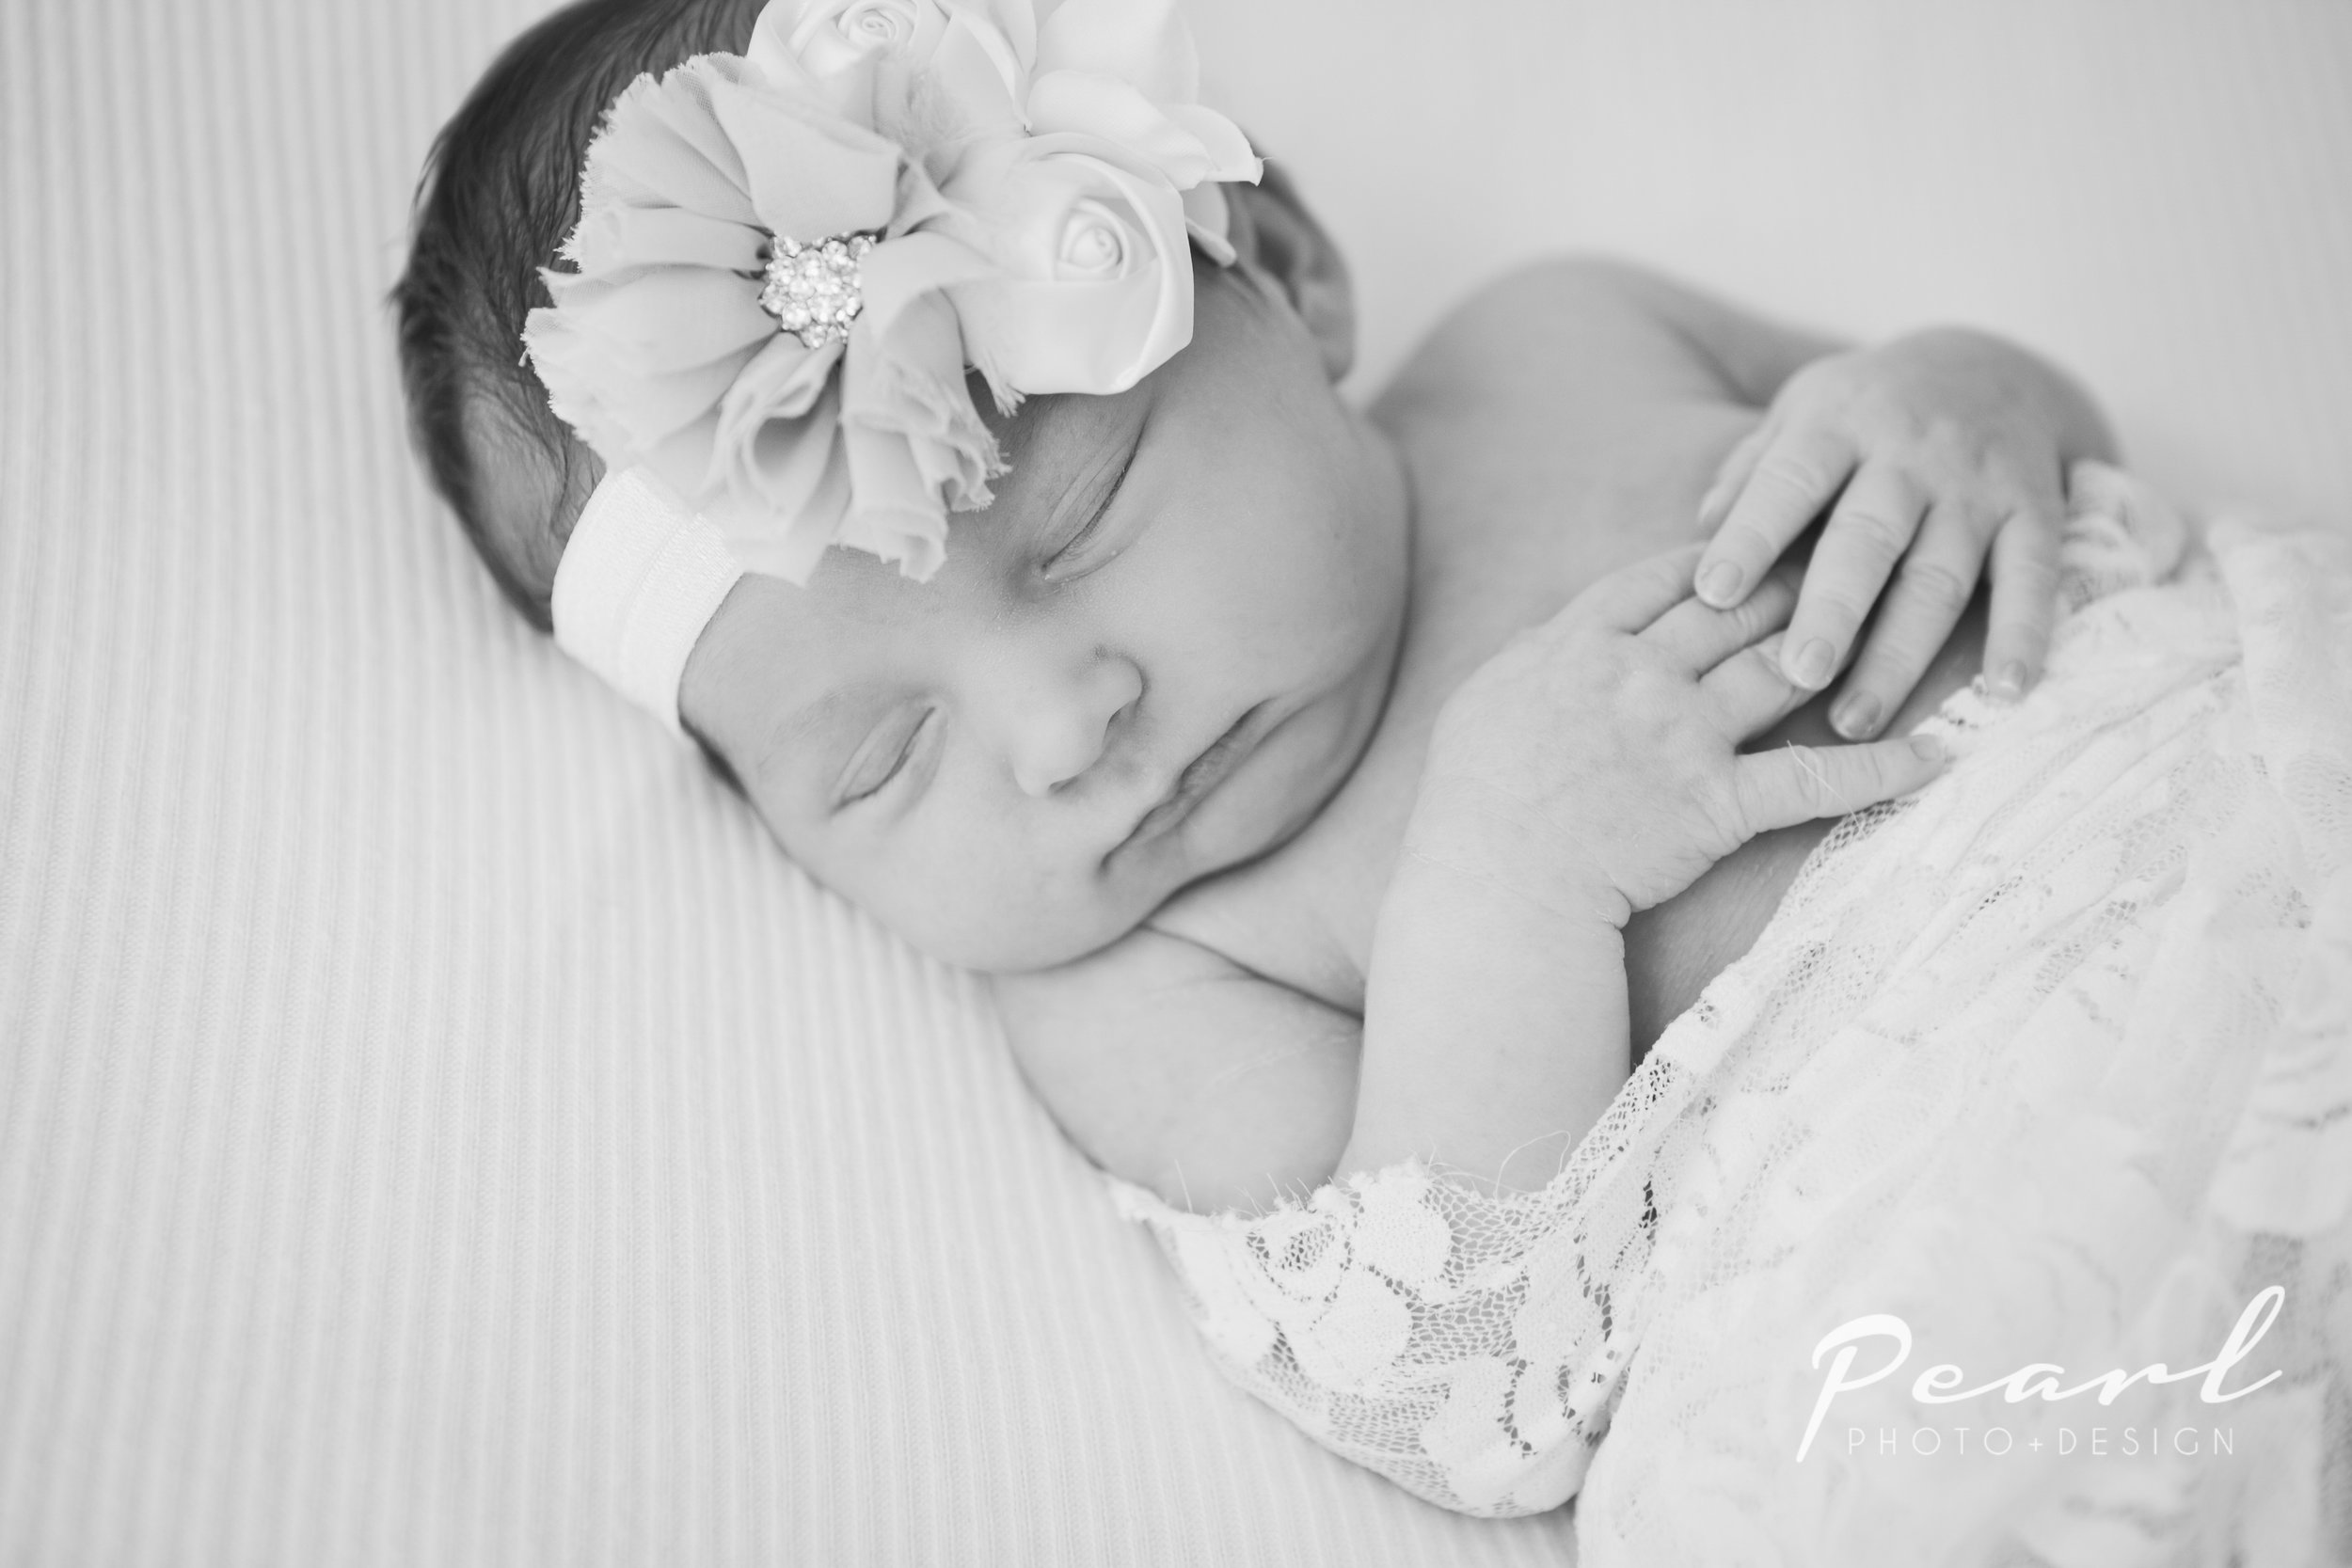 Pearl Newborn Photographer7